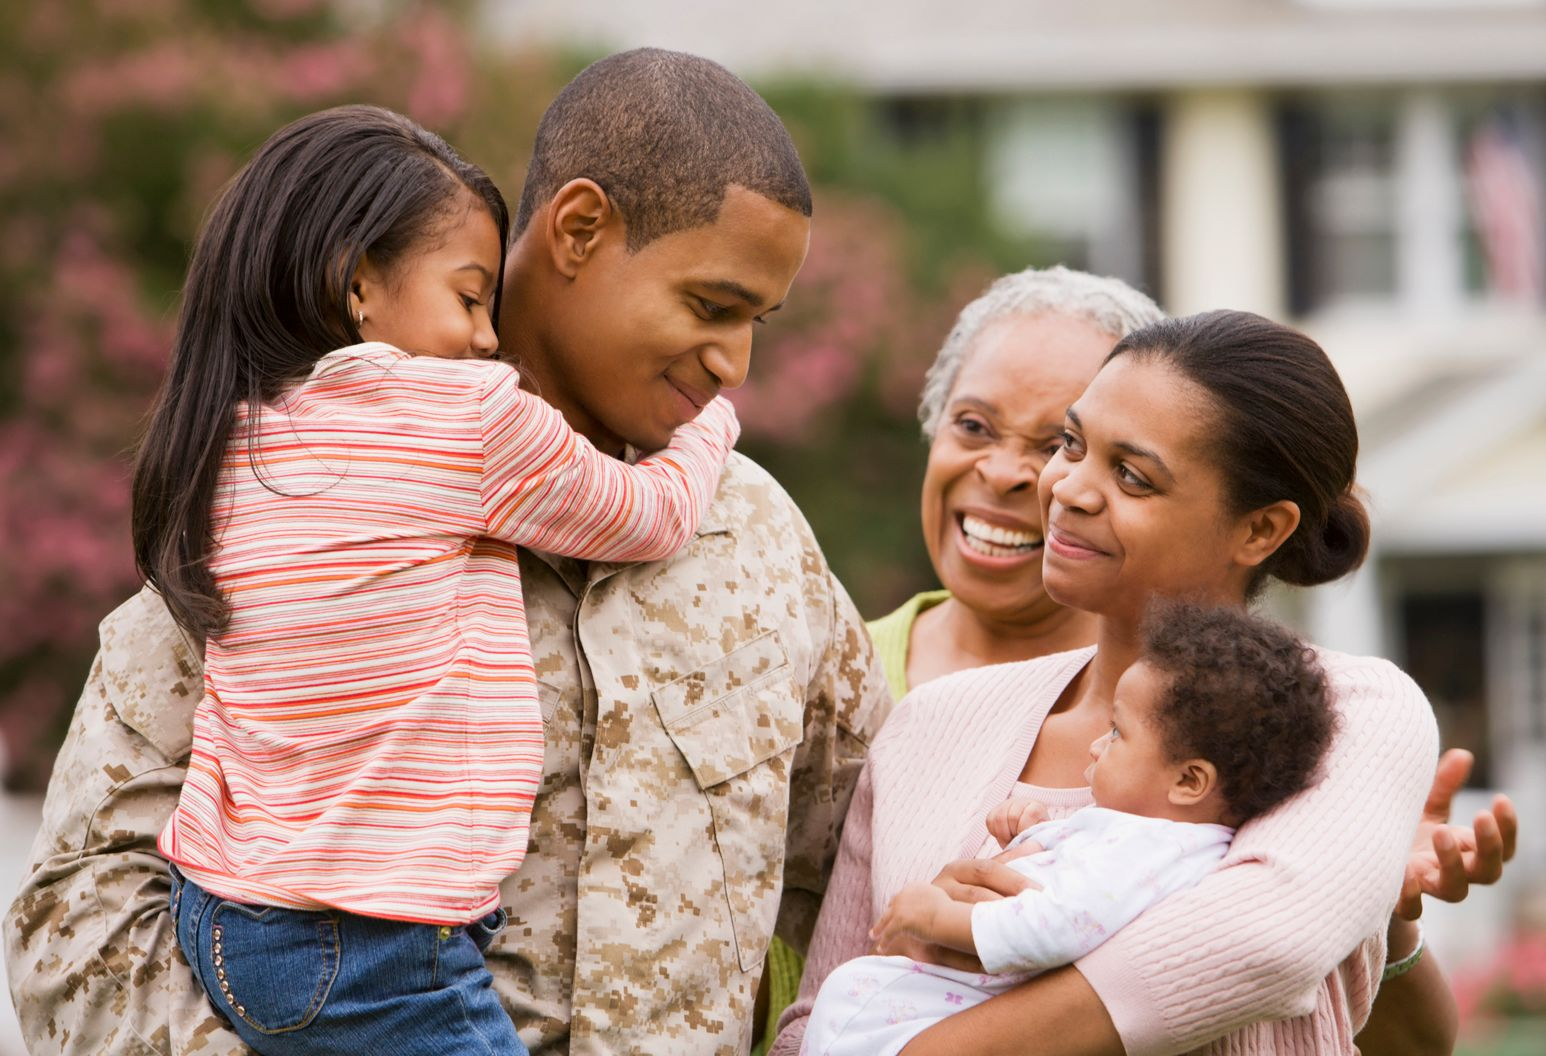 Soldier standing with his wife, two young children, and mother